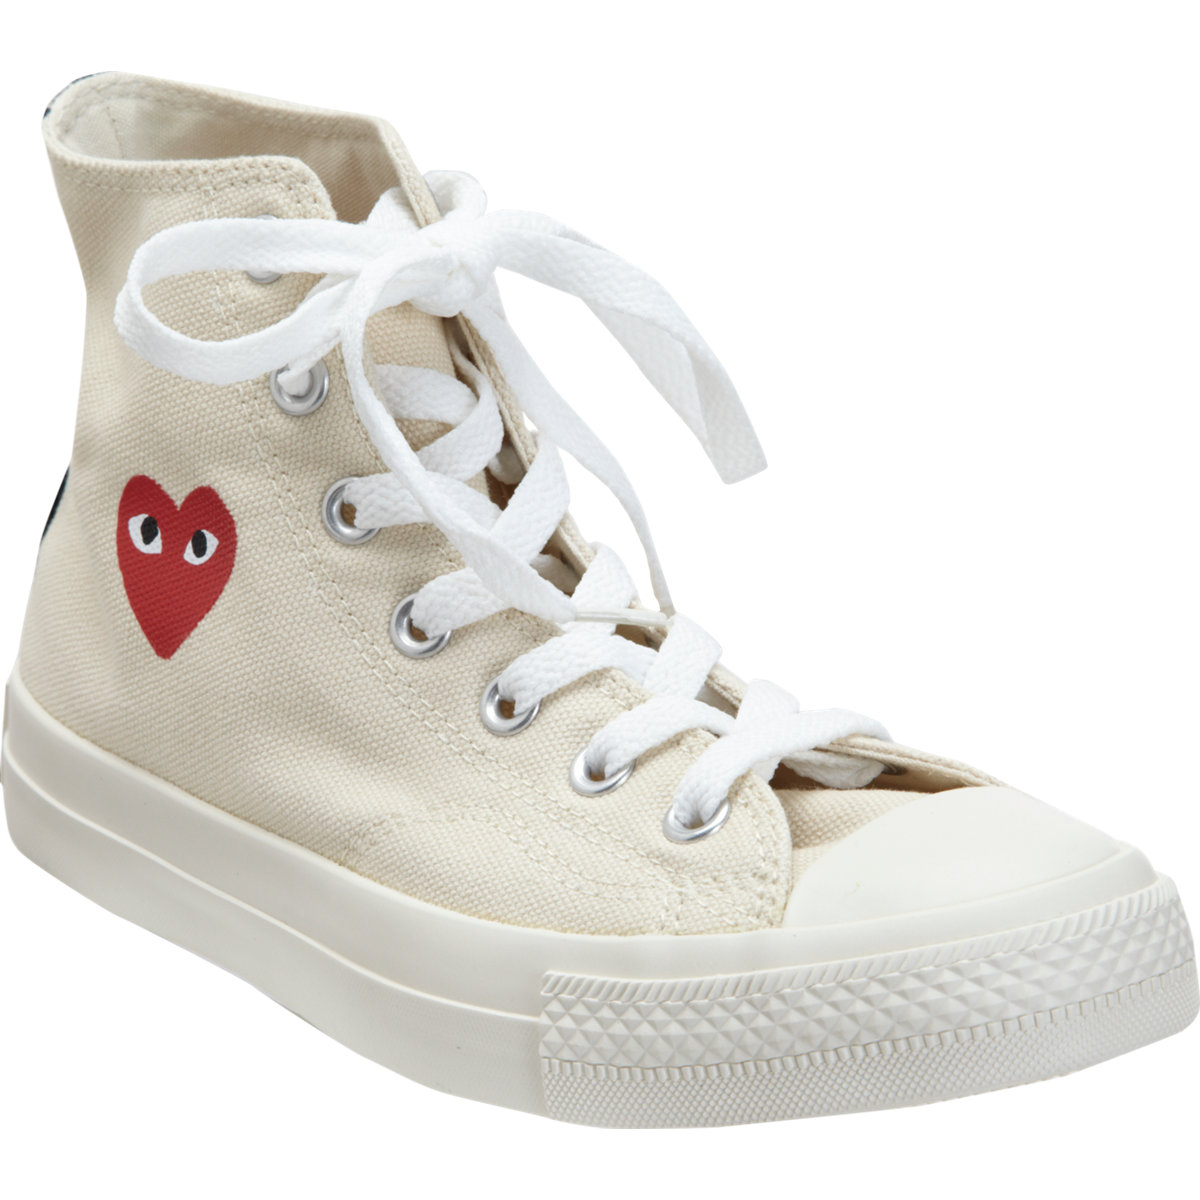 3b7871bf651 Lyst - Play Comme des Garçons Women s Chuck Taylor High-top Sneakers ...